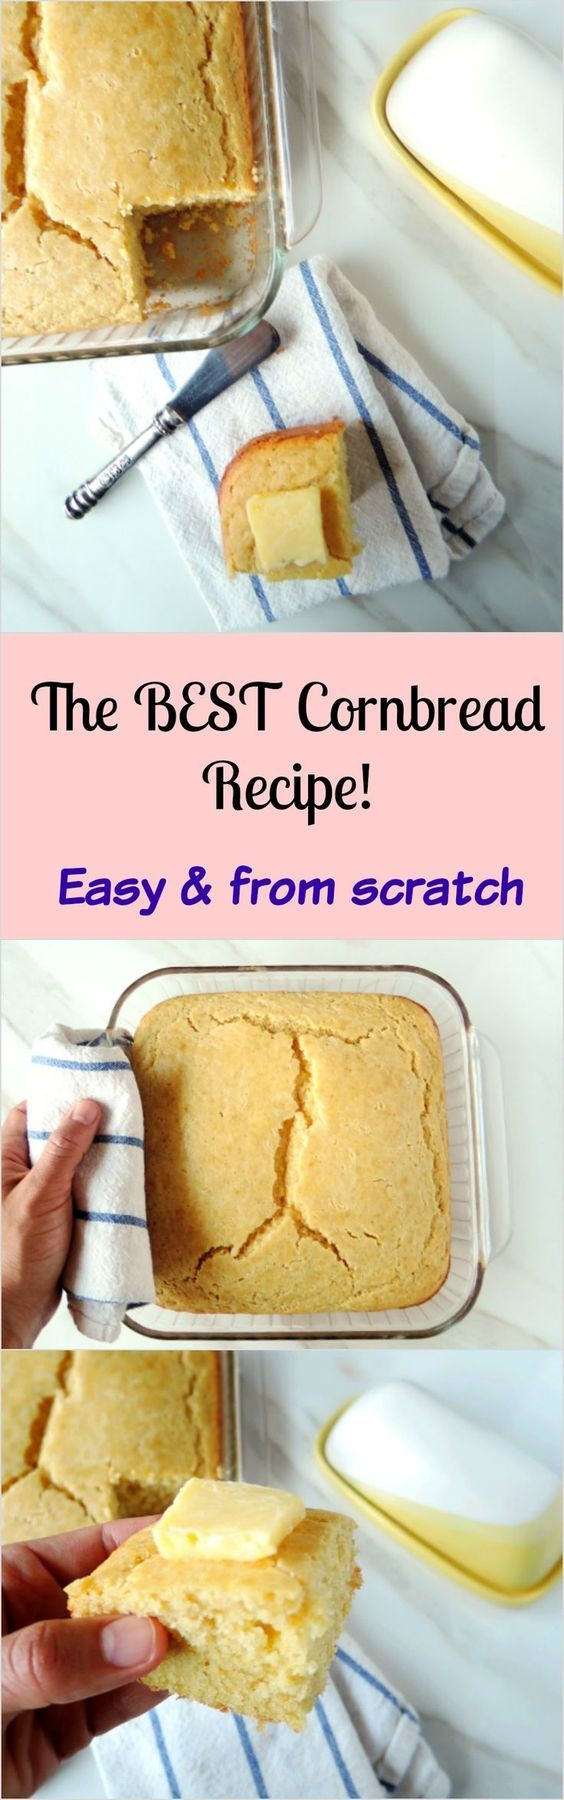 11 best bread images on pinterest banana bread recipes breads and the best and only cornbread recipe you will ever need so simple moist and forumfinder Images